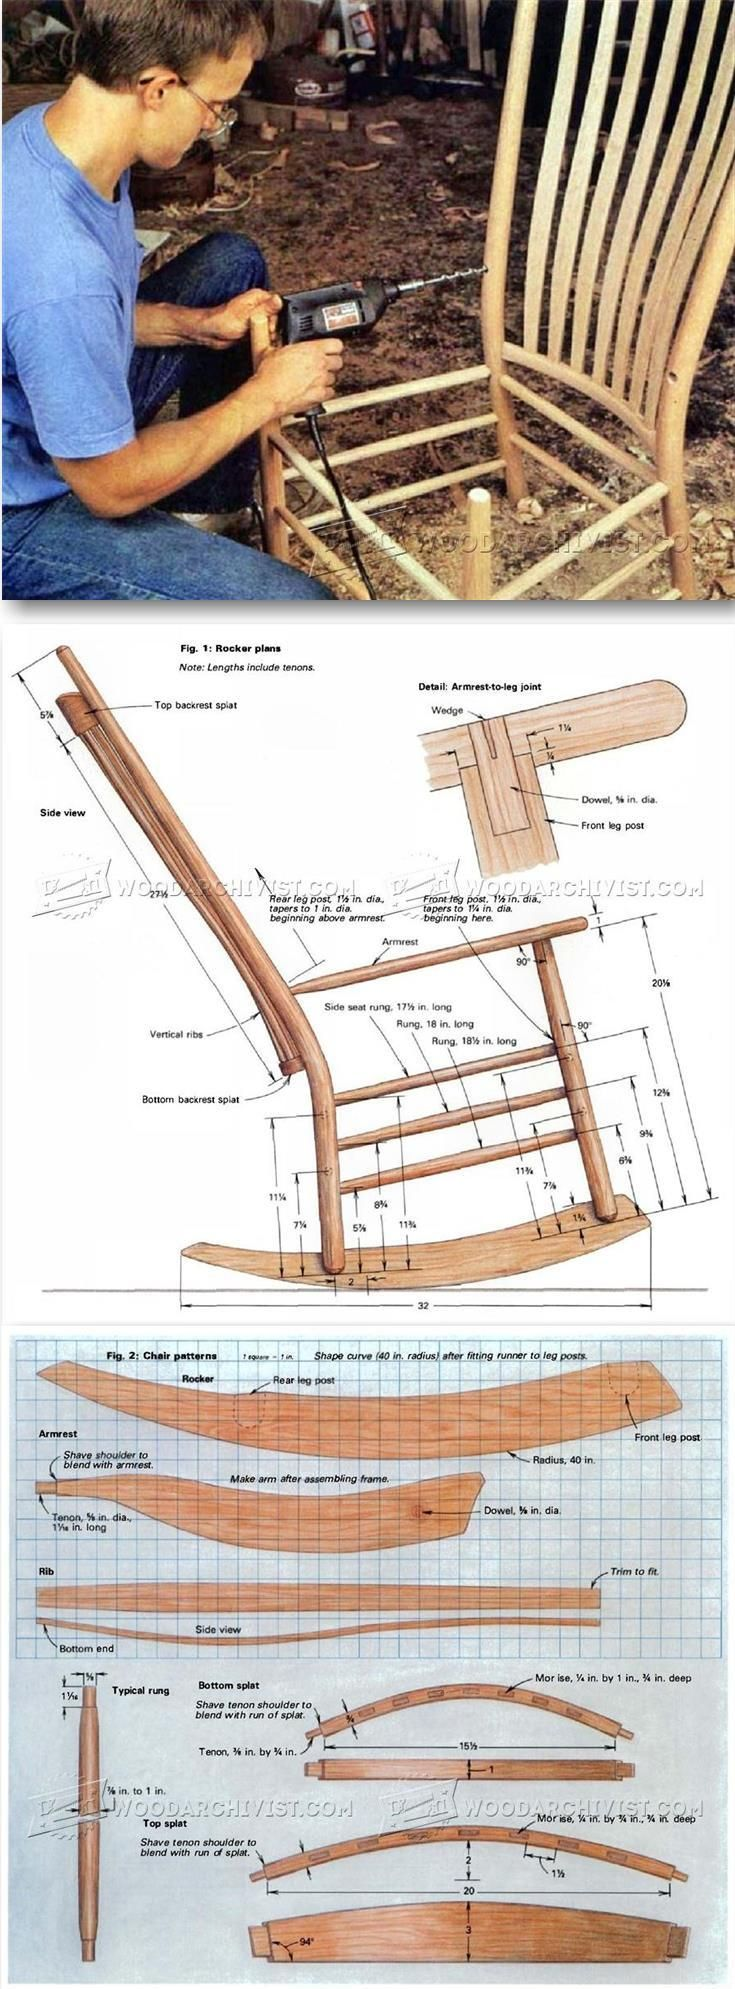 Build Rocking Chair - Furniture Plans and Projects   WoodArchivist.com